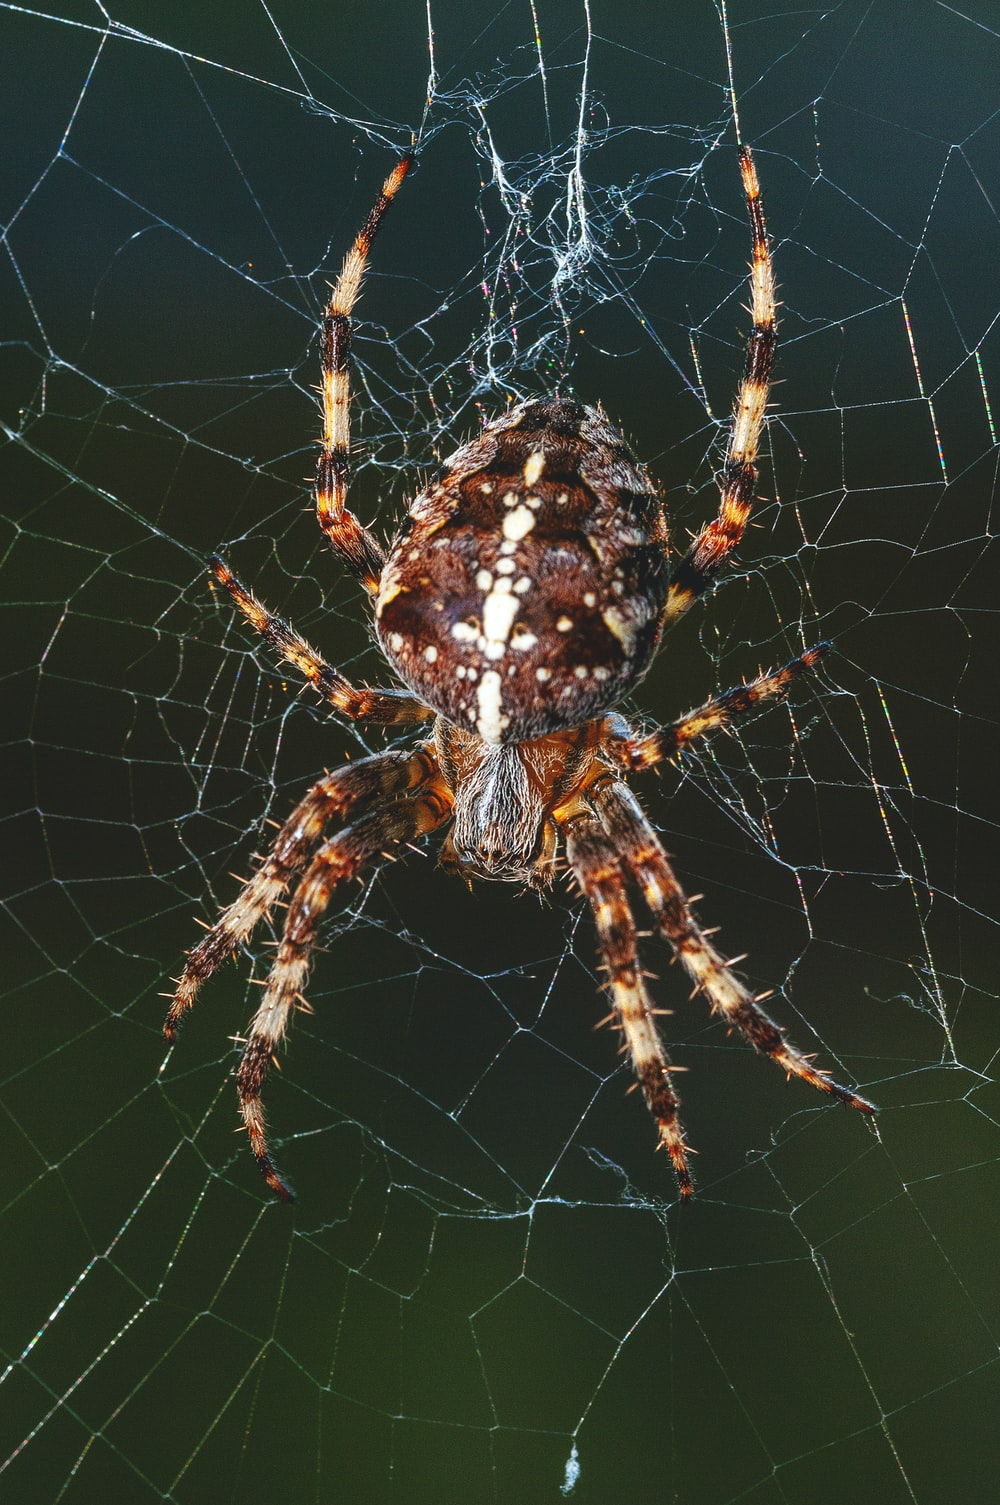 closeup photography of brown spider on spider web